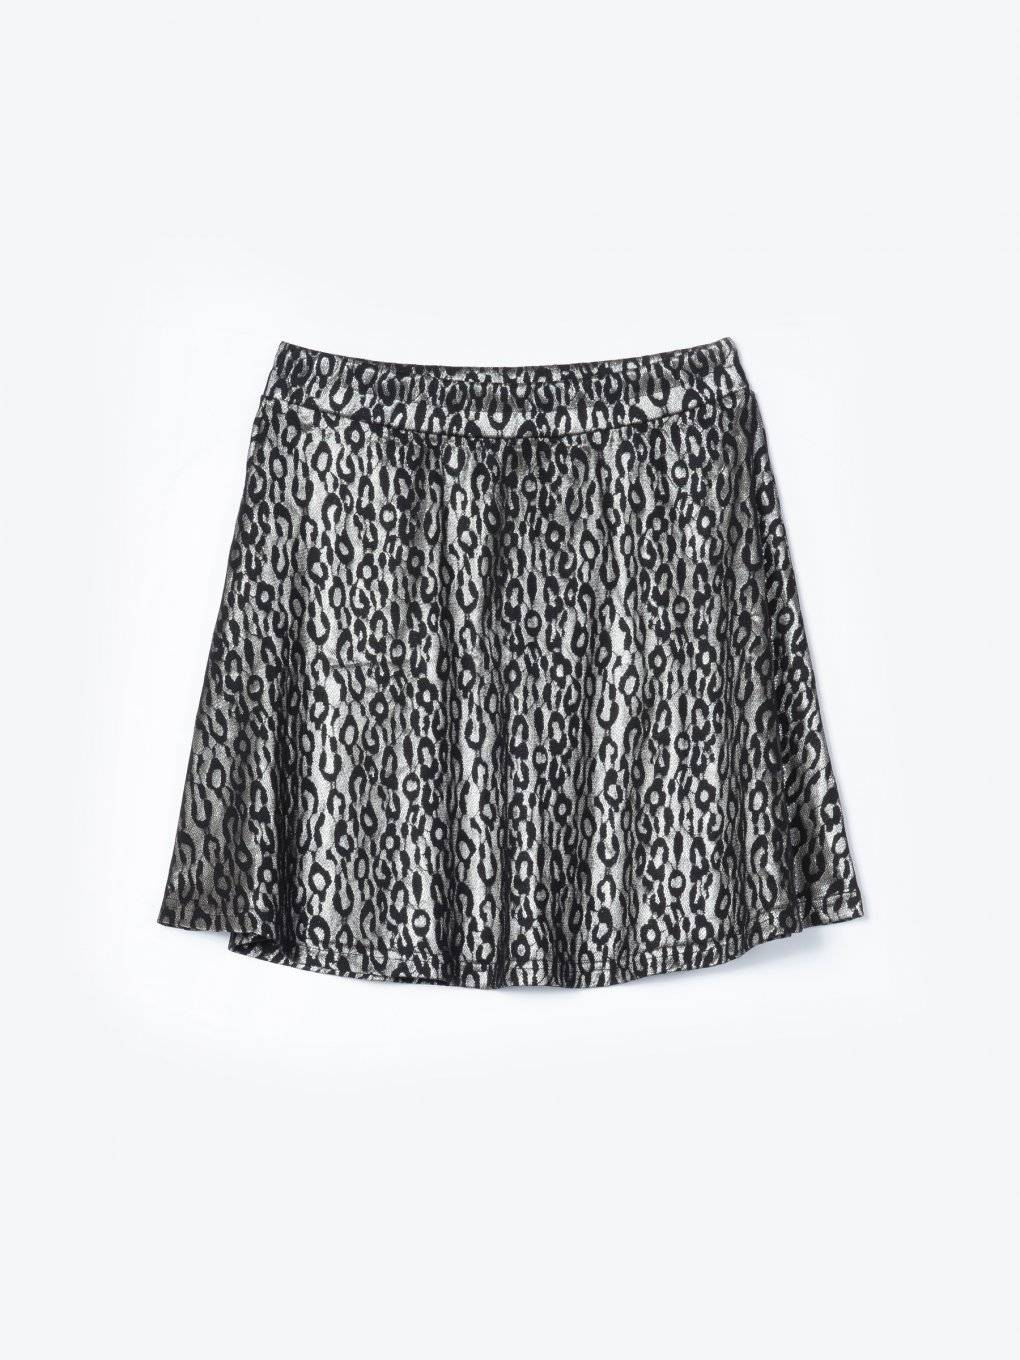 A-line skirt with metallic animal pattern